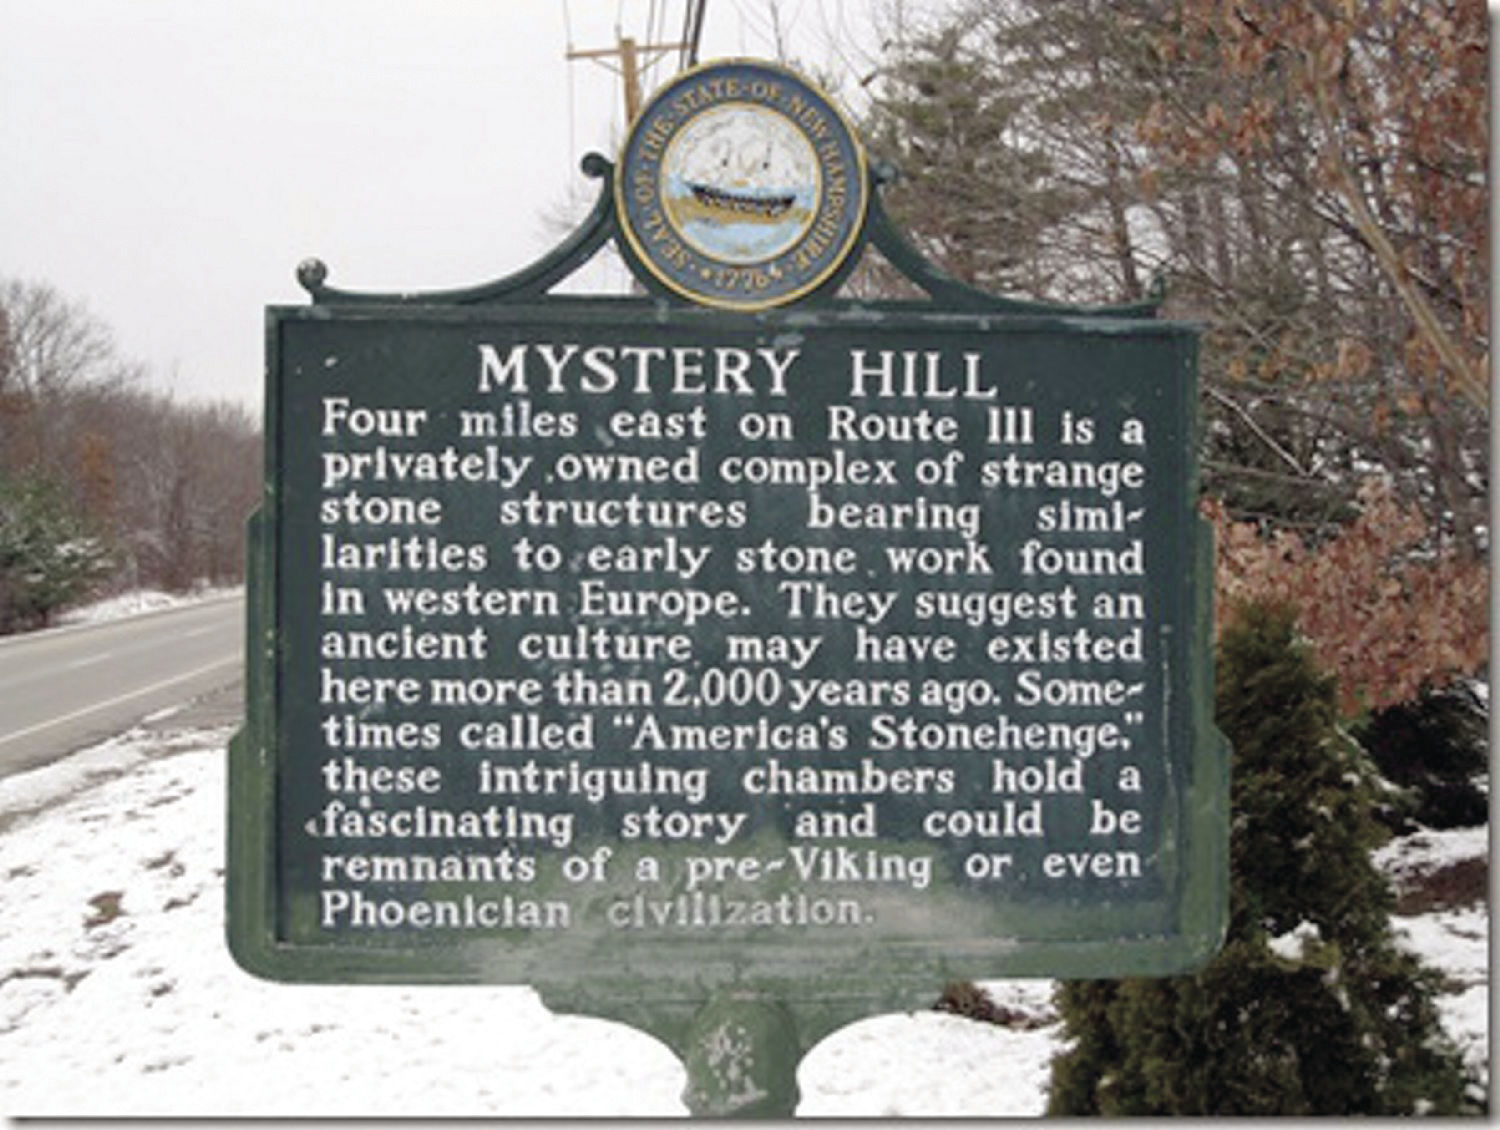 Americas Stonehenge, The Mystery Hill Story